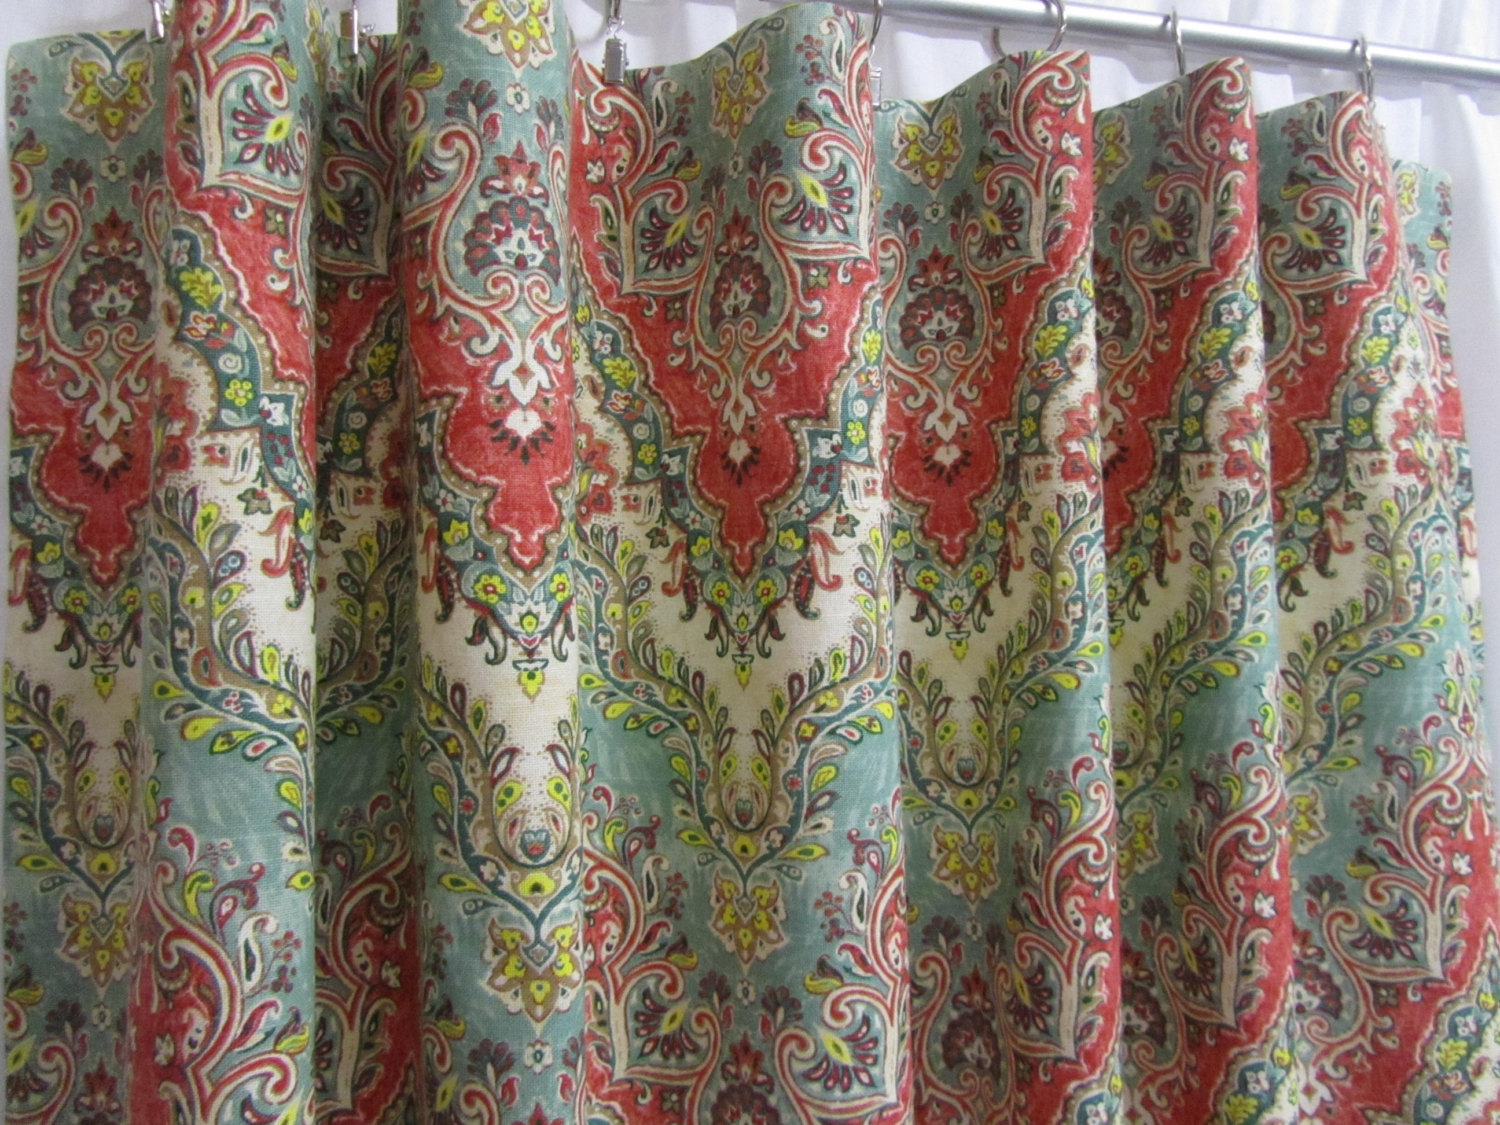 Moroccan Curtains Etsy Pertaining To Morrocan Curtains (Image 6 of 15)